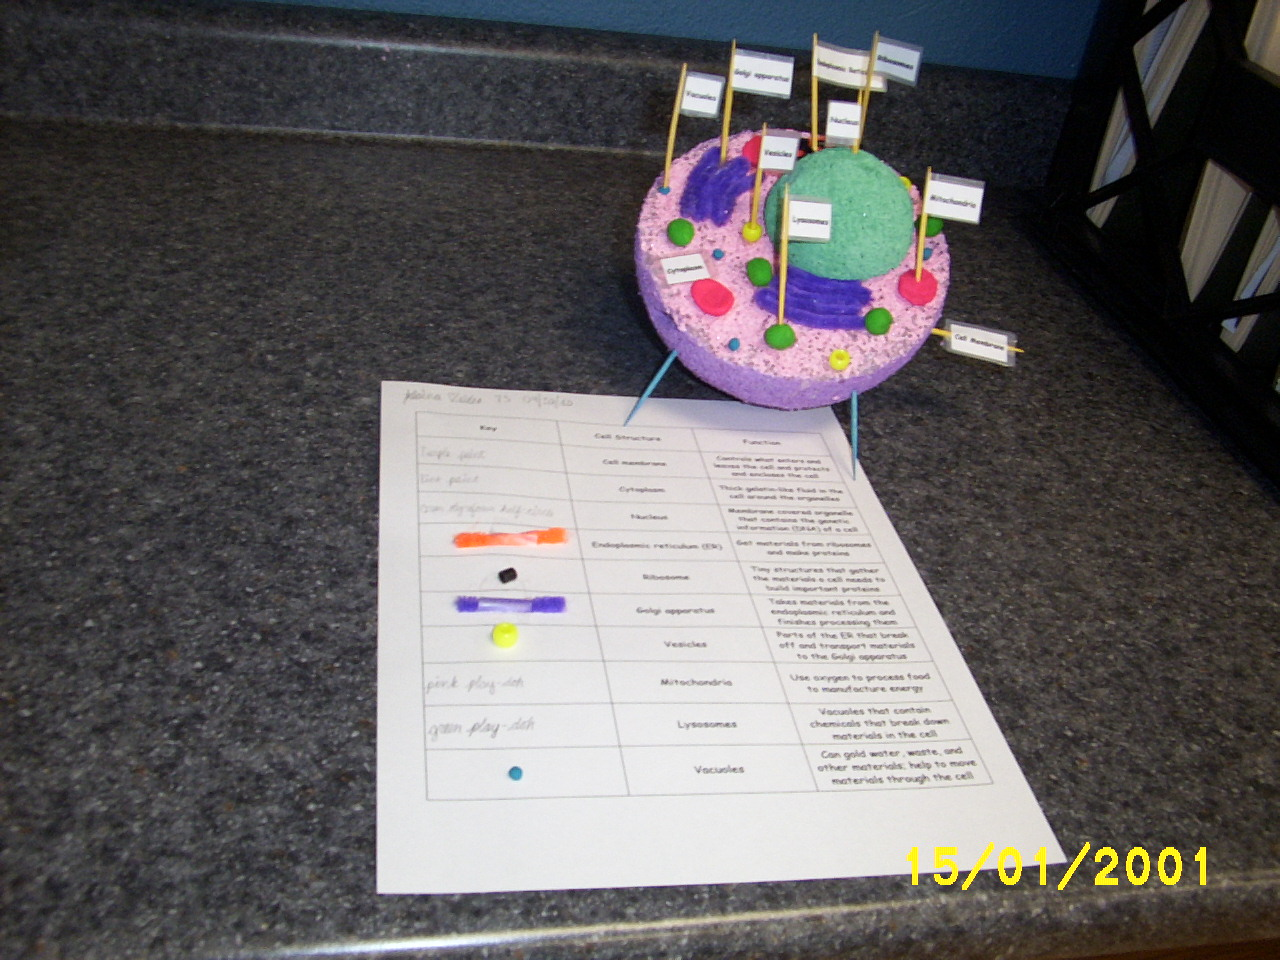 Animal Cell School Project Ideas http://stpvogelweid.edublogs.org/2010/11/04/the-7th-grade-science-project-on-plant-and-animal-cells/